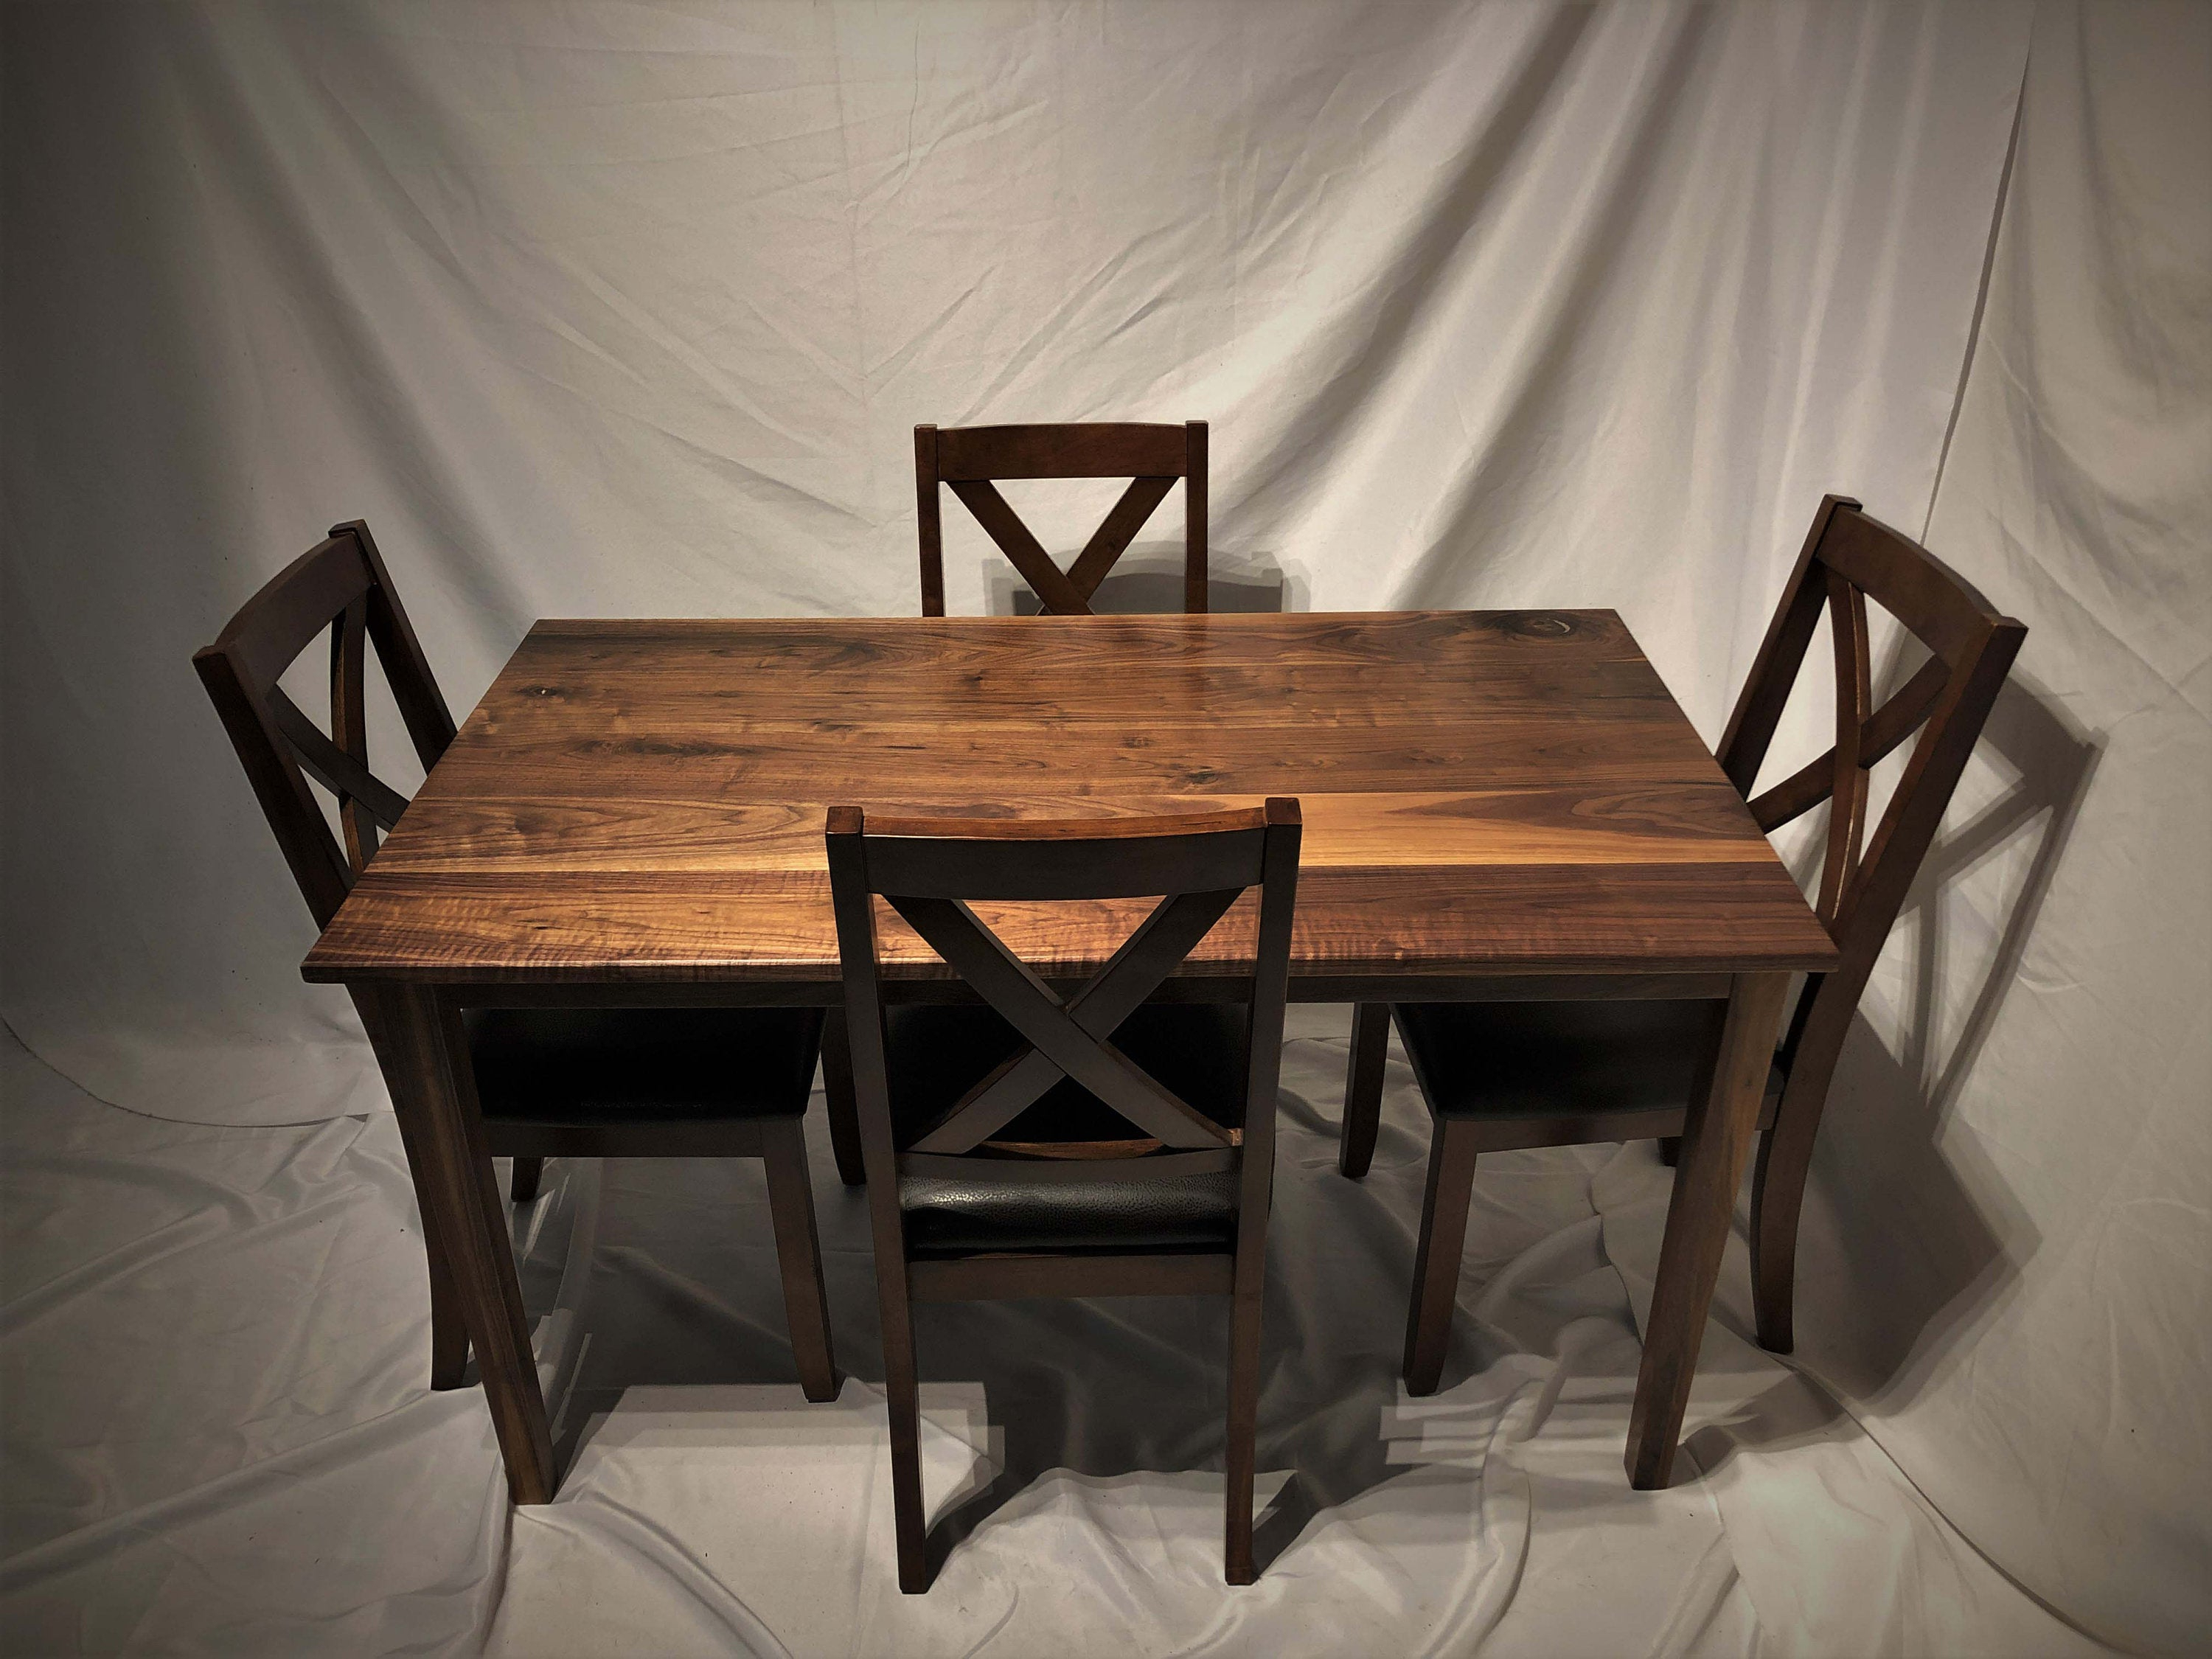 Etsy Throughout Sundberg 5 Piece Solid Wood Dining Sets (Gallery 25 of 25)